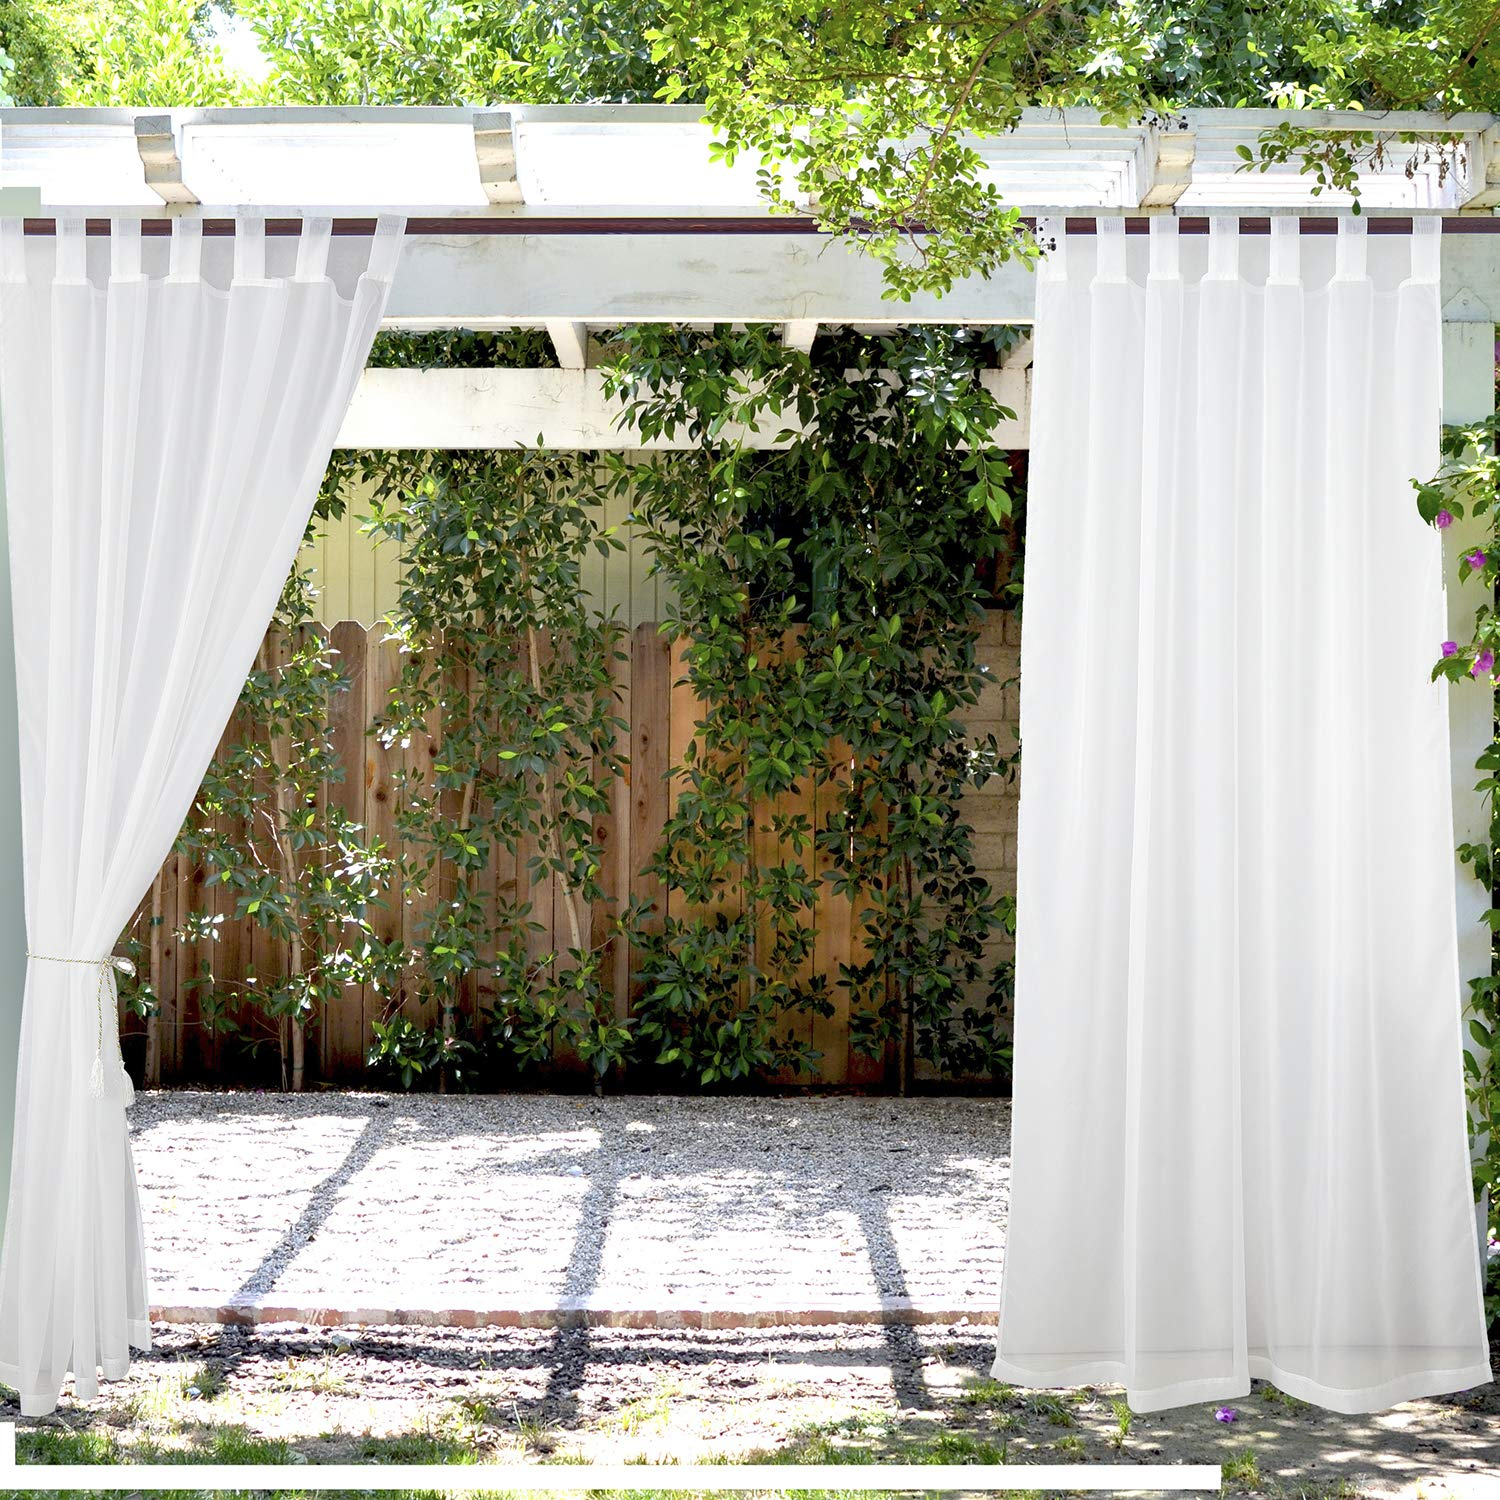 PRAVIVE Outdoor Sheer Curtain Panels - Elegant Waterfroof Tab Top Indoor/Outdoor Drapes/Pergola Shades/Gazebo Blinds for Patio Privacy (2 Tiebacks Included), Off White, 54'' W X 96'' L, Set of 2